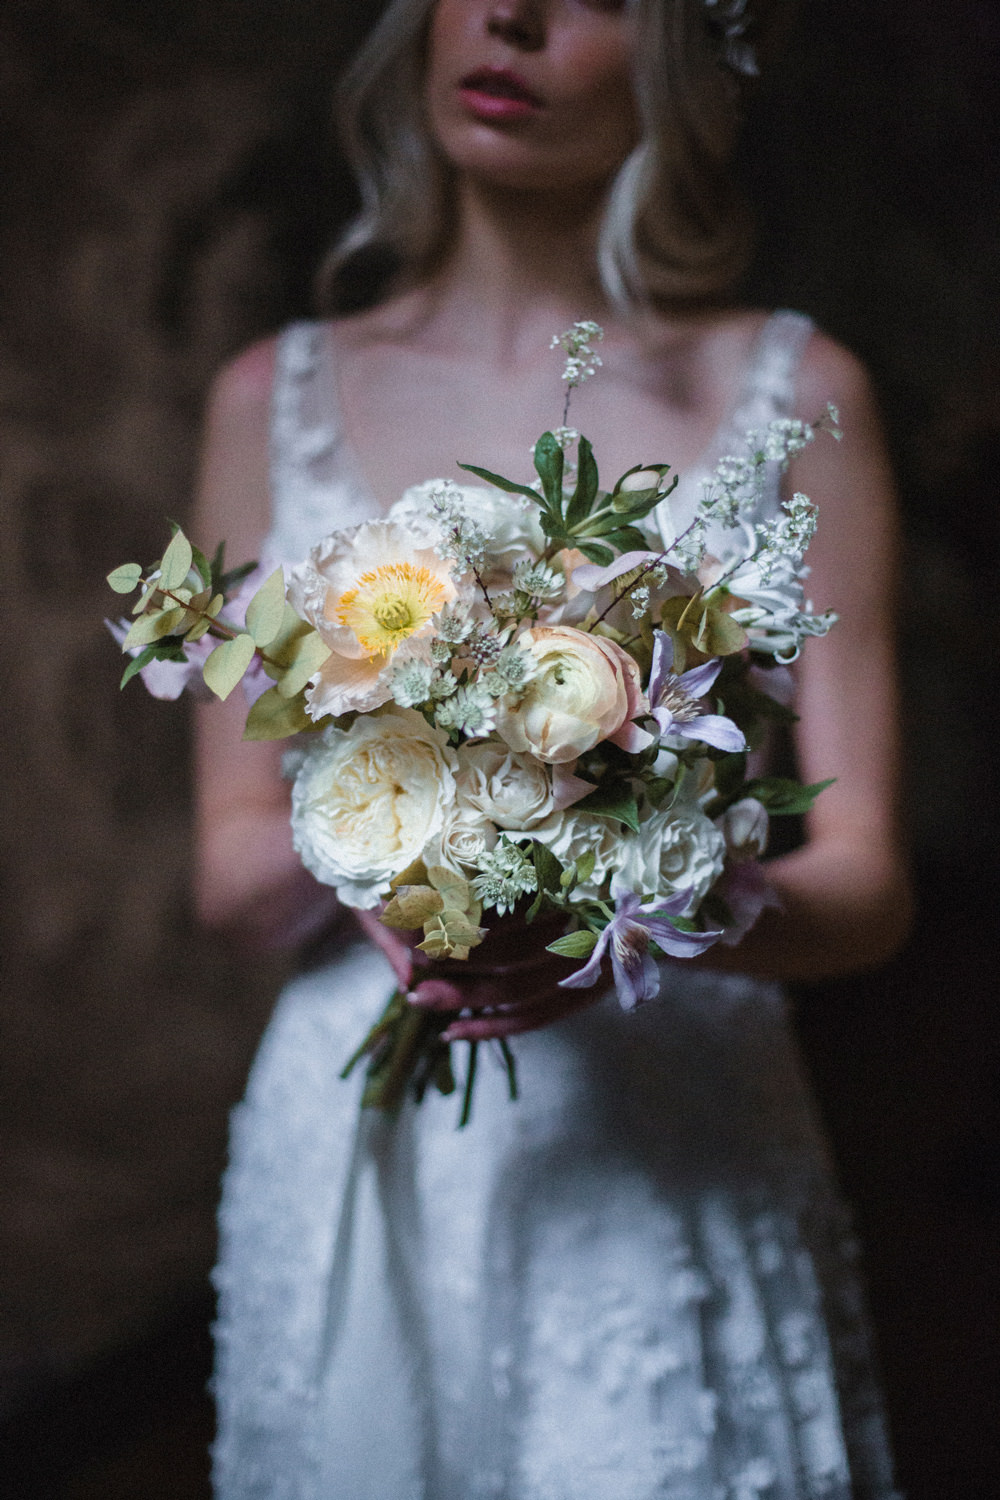 Bouquet Flowers Bride Bridal Peach Pink Anemone Rose Ranunculus Whimsical Elegant Wedding Ideas Mandorla London